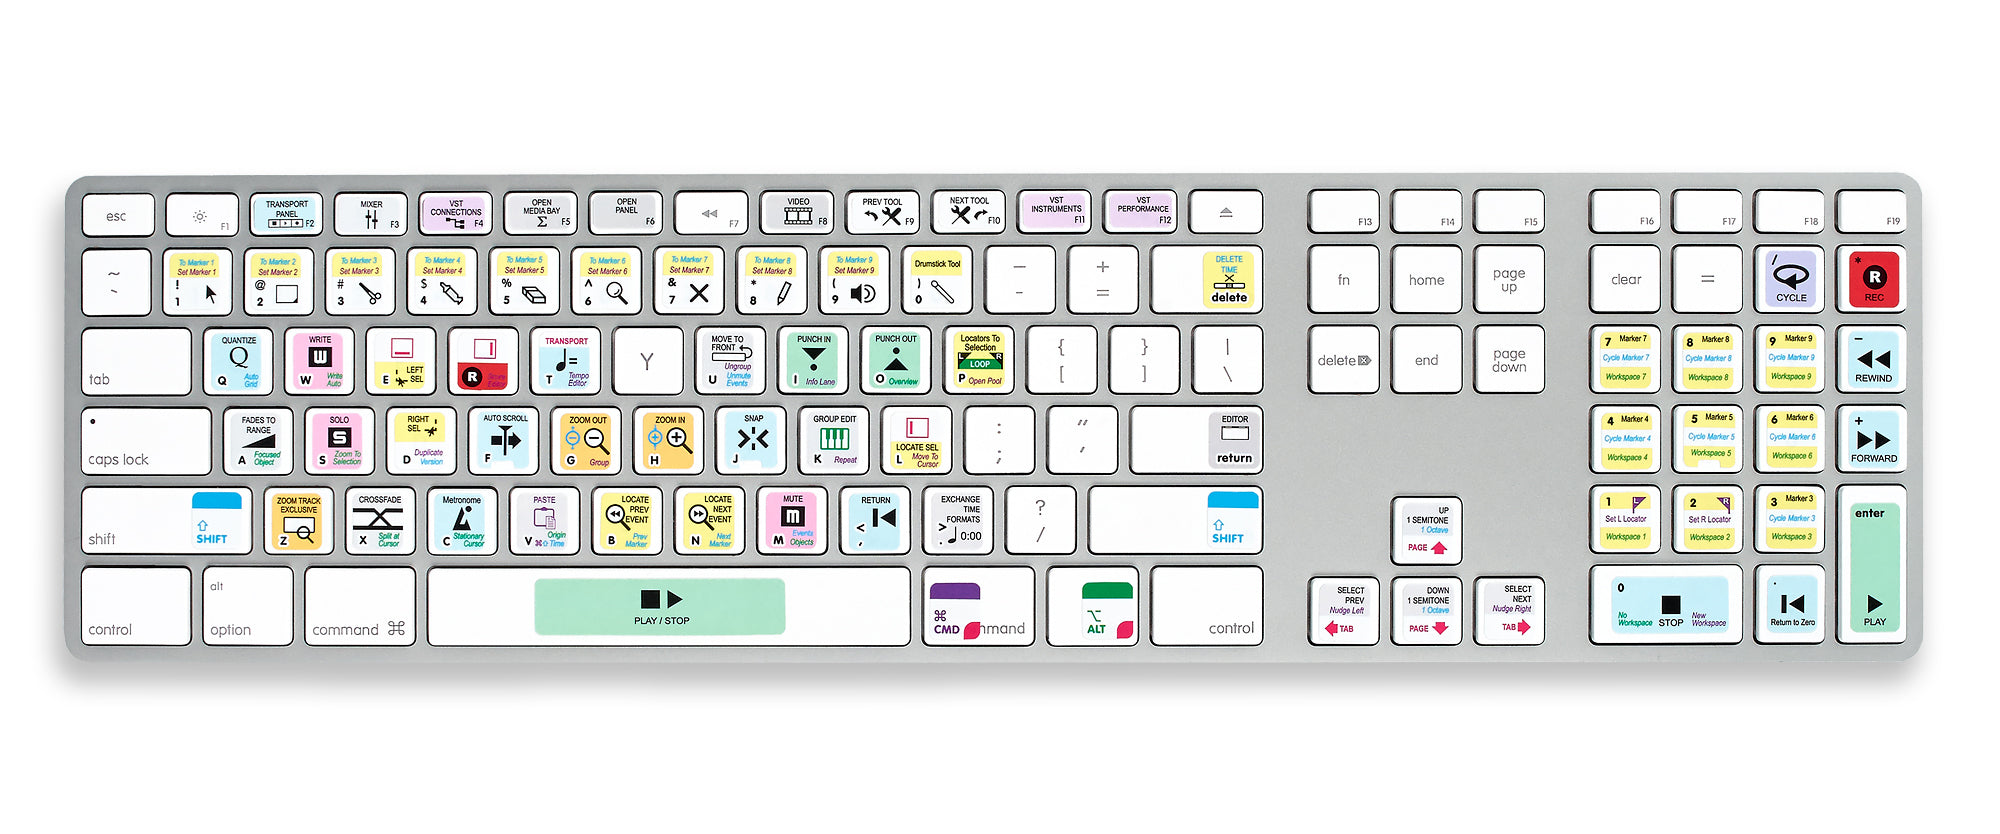 image regarding Printable Keyboard Stickers named Cubase Nuendo